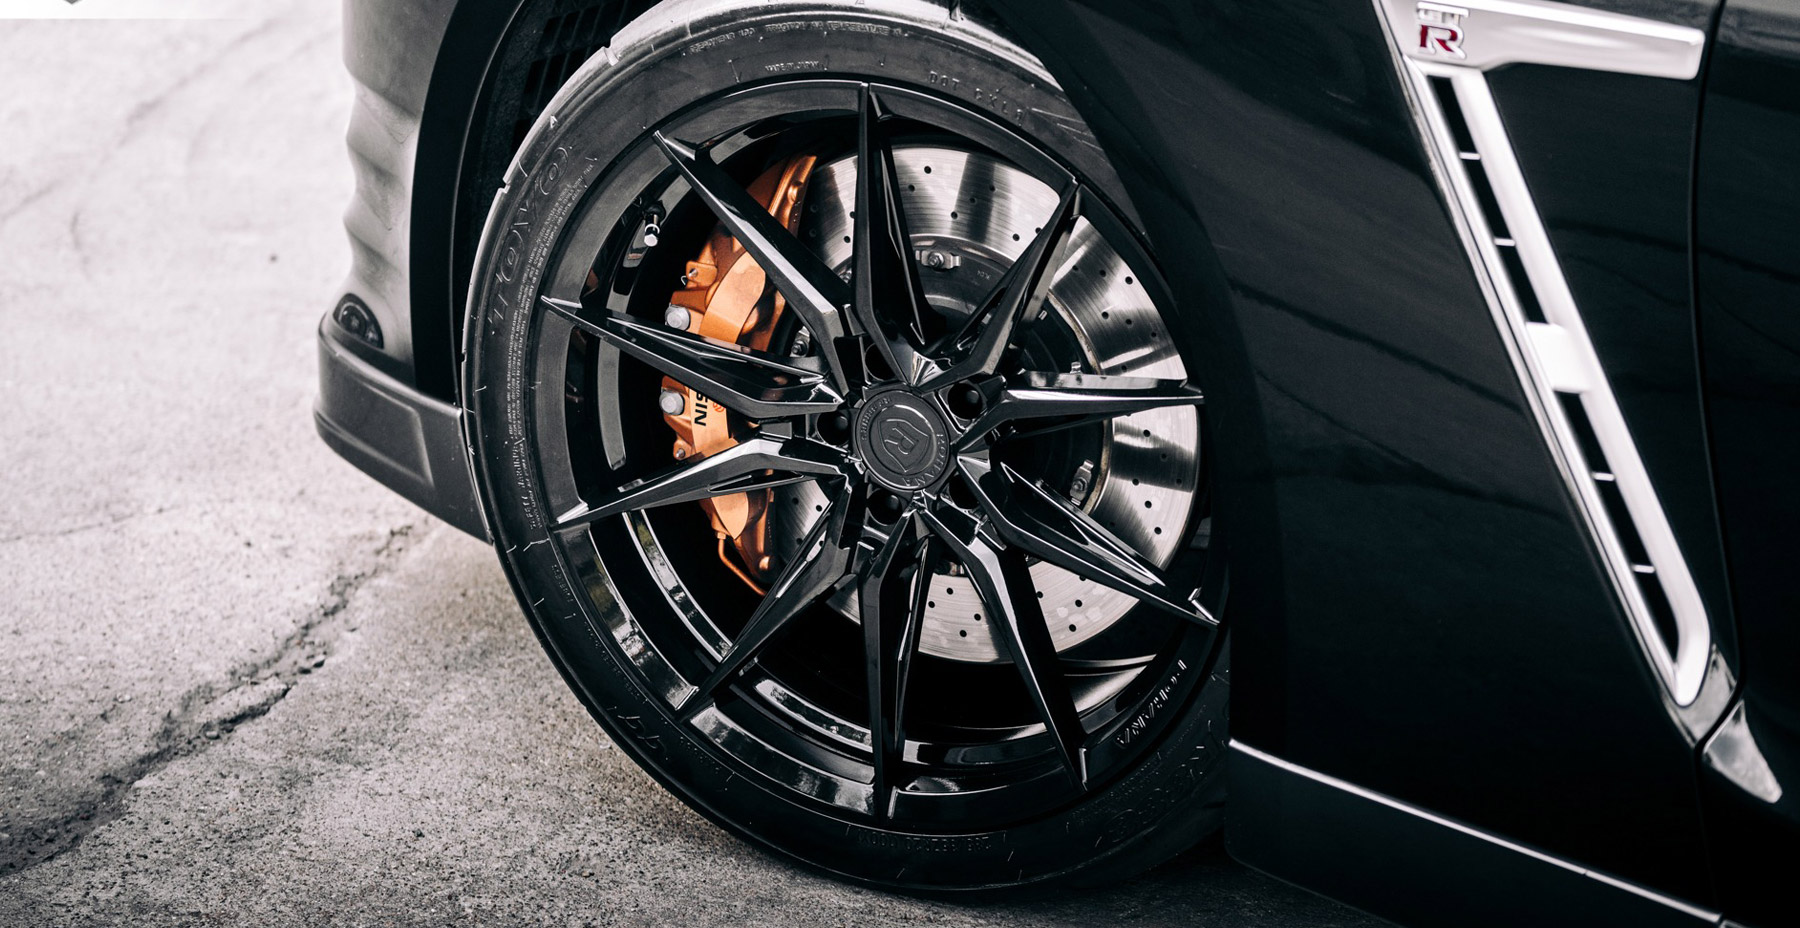 Black Nissan GTR x Rohana RFX13 Wheels (Finished in Gloss Black)